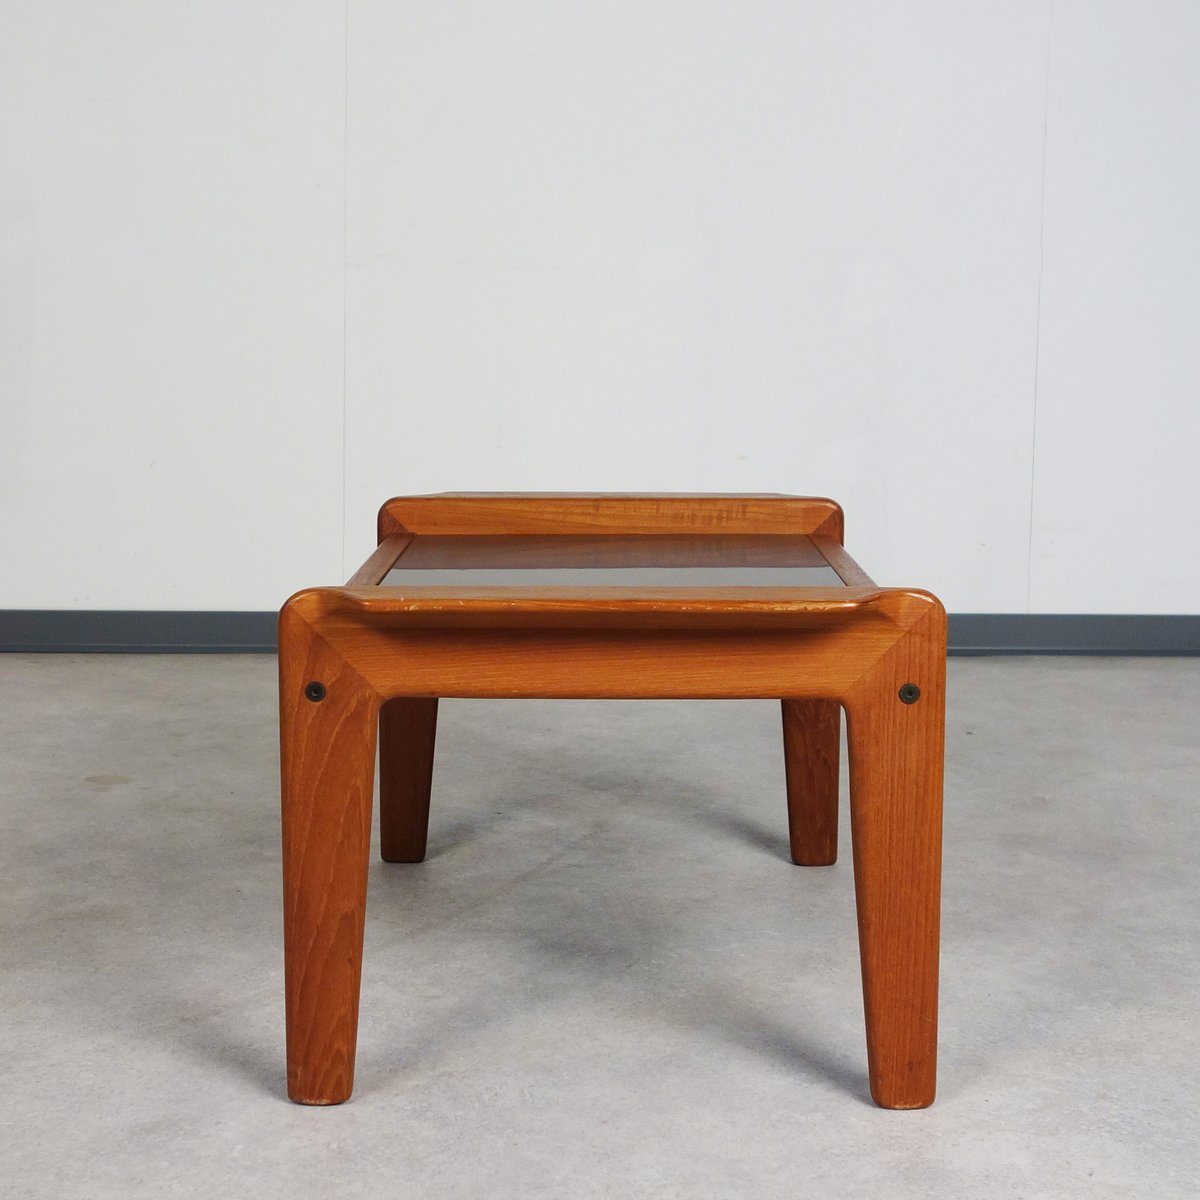 Vintage Small Coffee Table By Arne Wahl Iversen For Komfort For Sale At Pamono